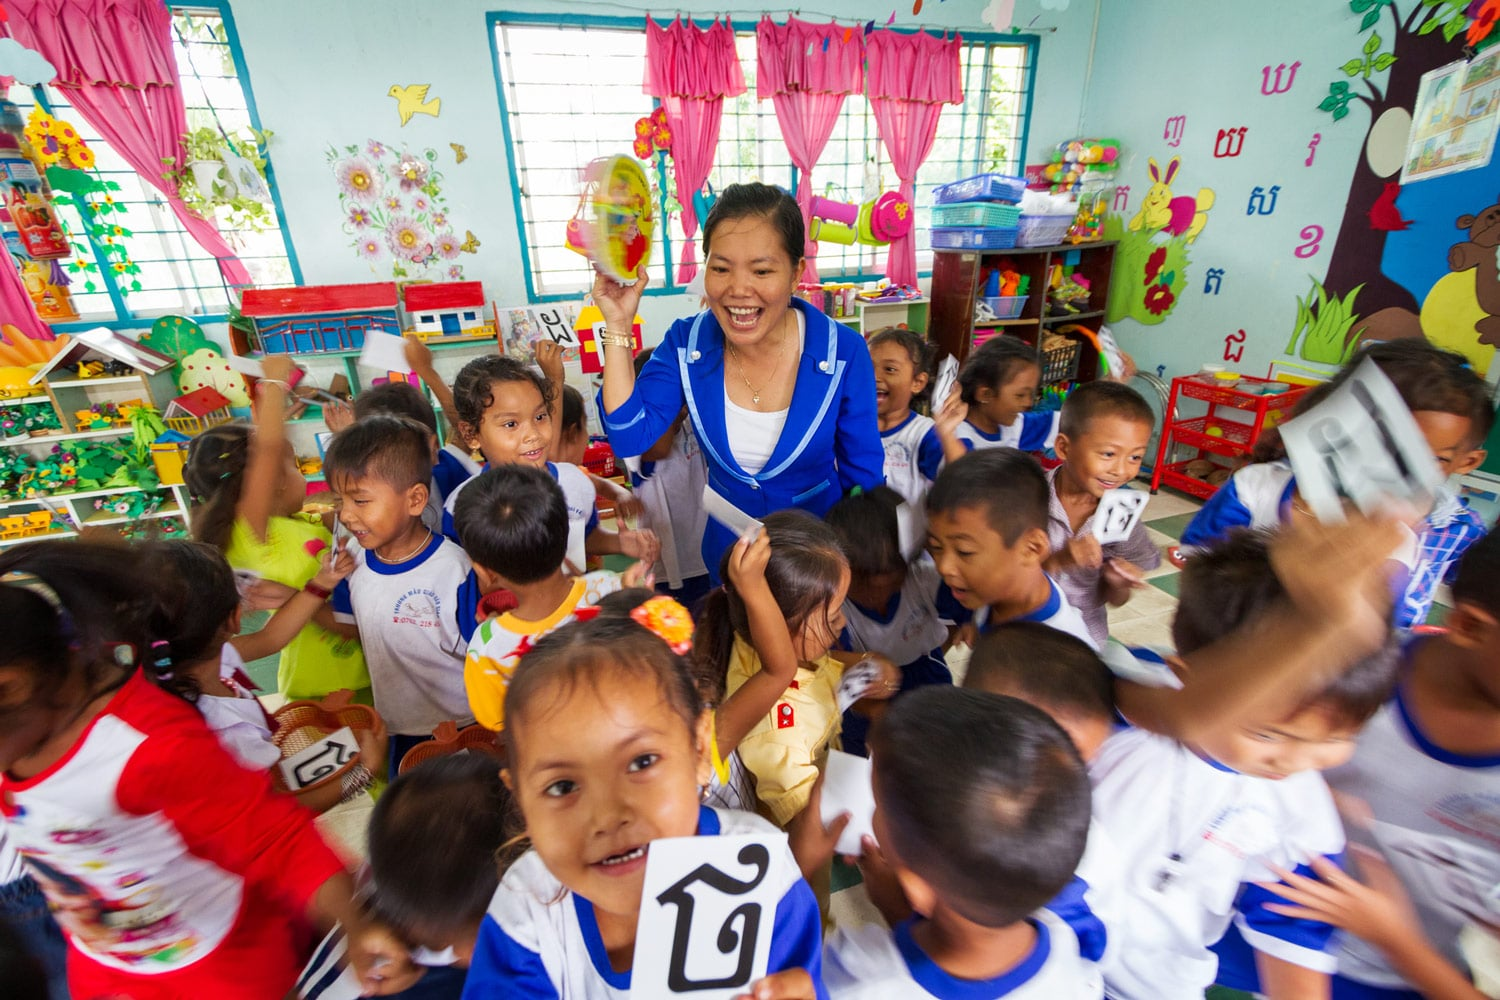 Research indicates that by starting their academic careers studying in their mother tongue, Ngoc and her classmates will become more confident learners than other ethnic minority students who have only studied in Vietnamese. They will also be better equipped to transfer their literacy and numeracy skills to additional languages and are less likely to experience the kind of frustration and failure that leads many ethnic minority students to drop out of school.